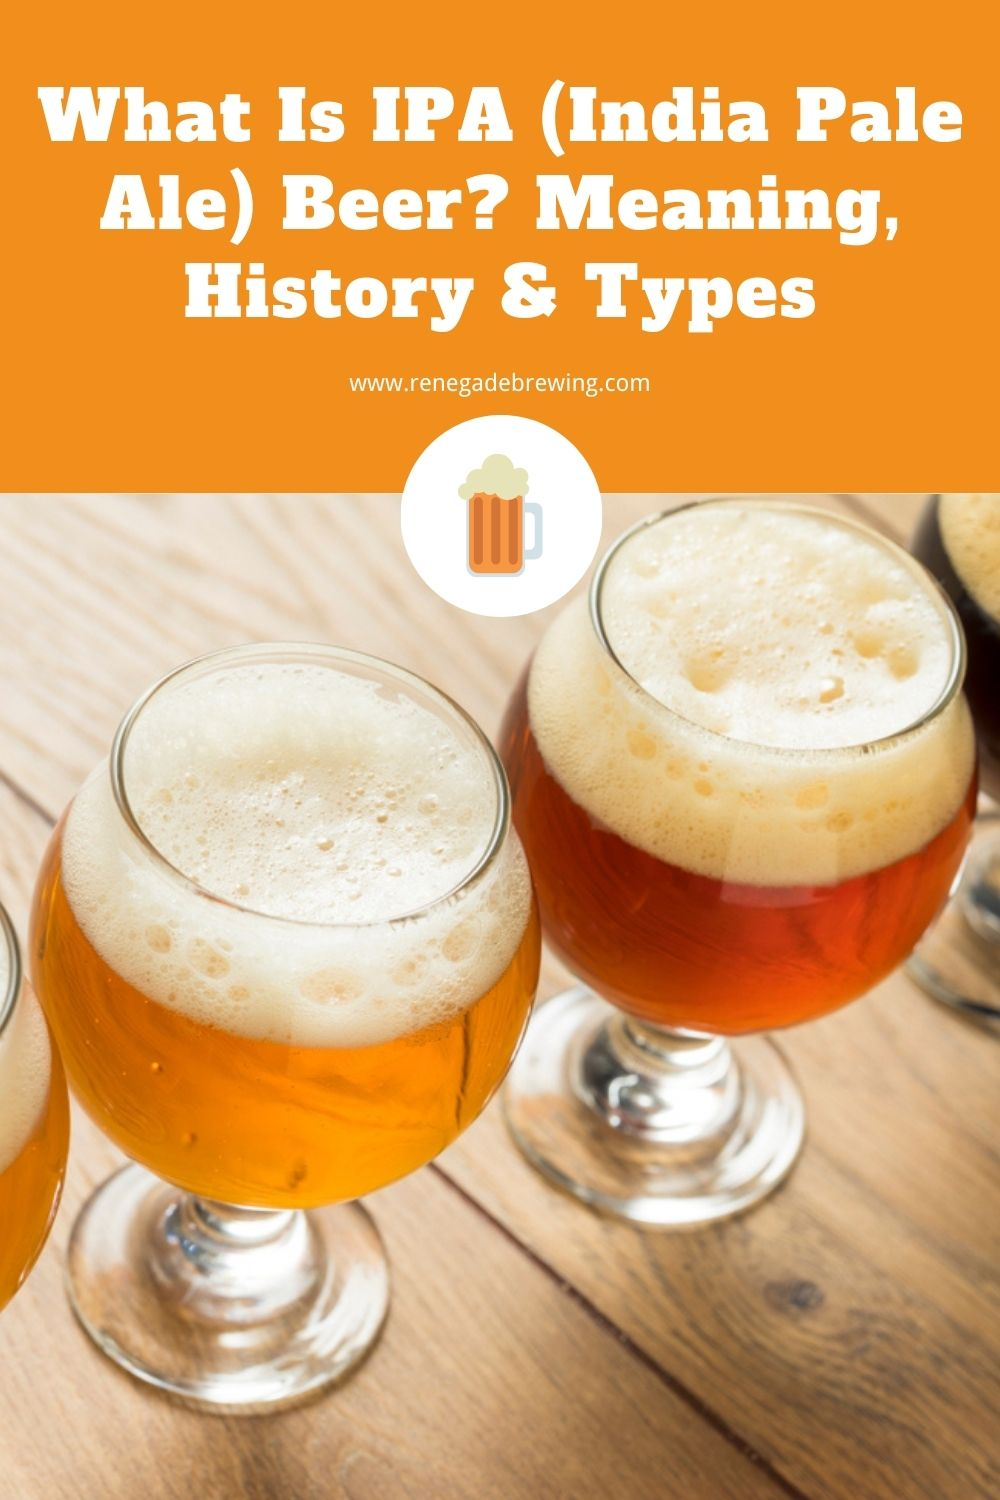 What Is IPA (India Pale Ale) Beer Meaning, History & Types 2